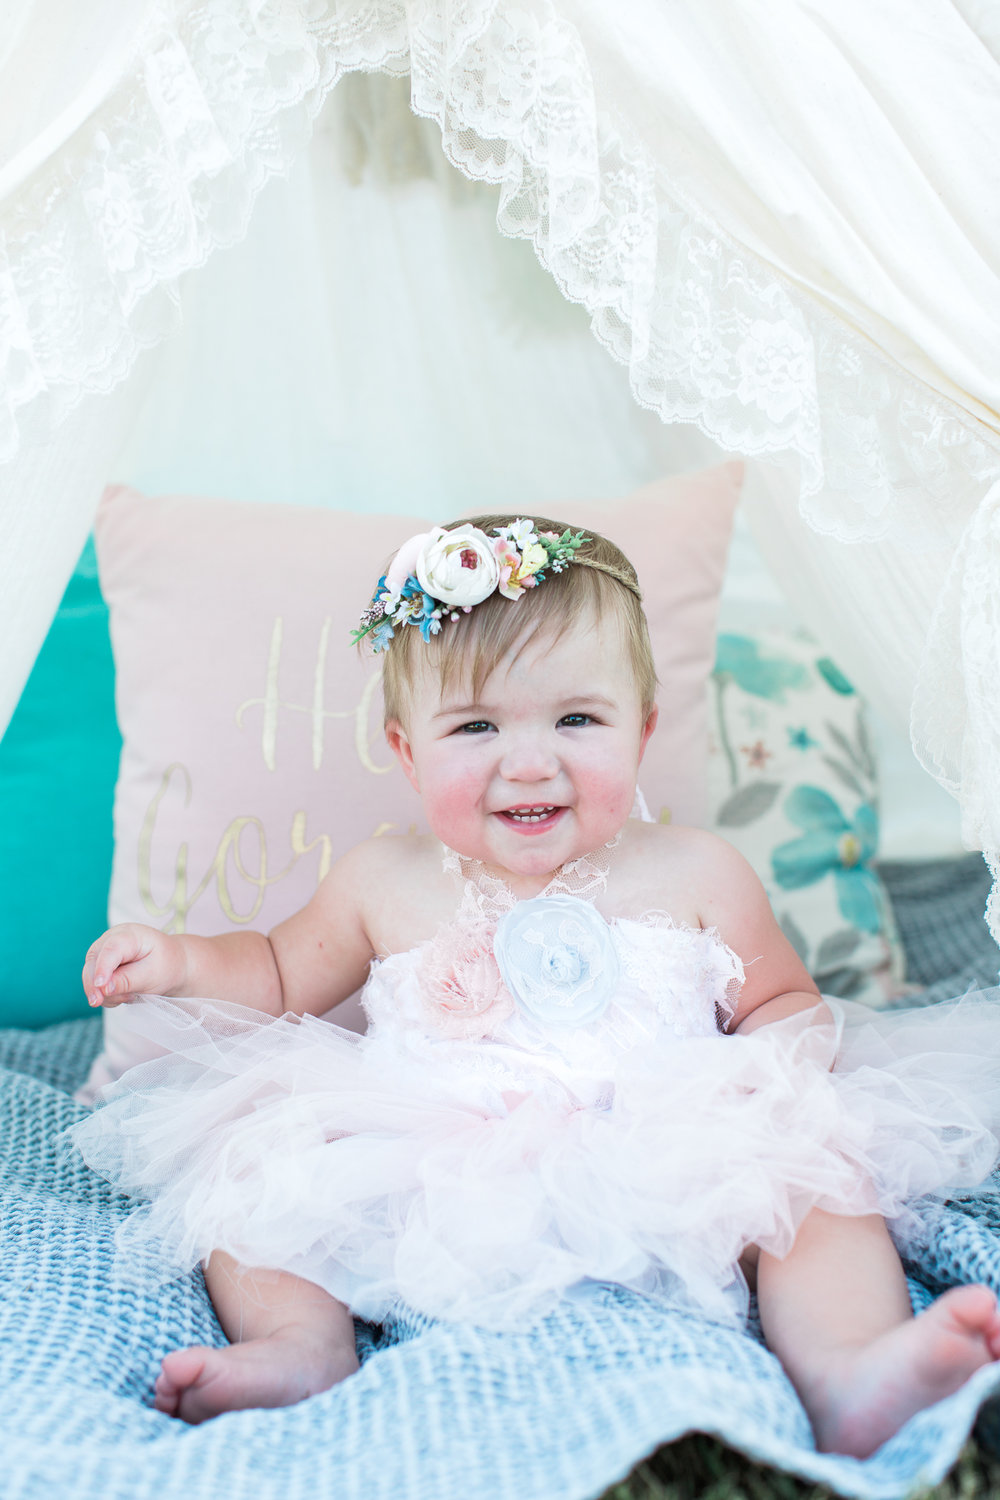 2 piece outfit - lace top and tulle skirt - 12months